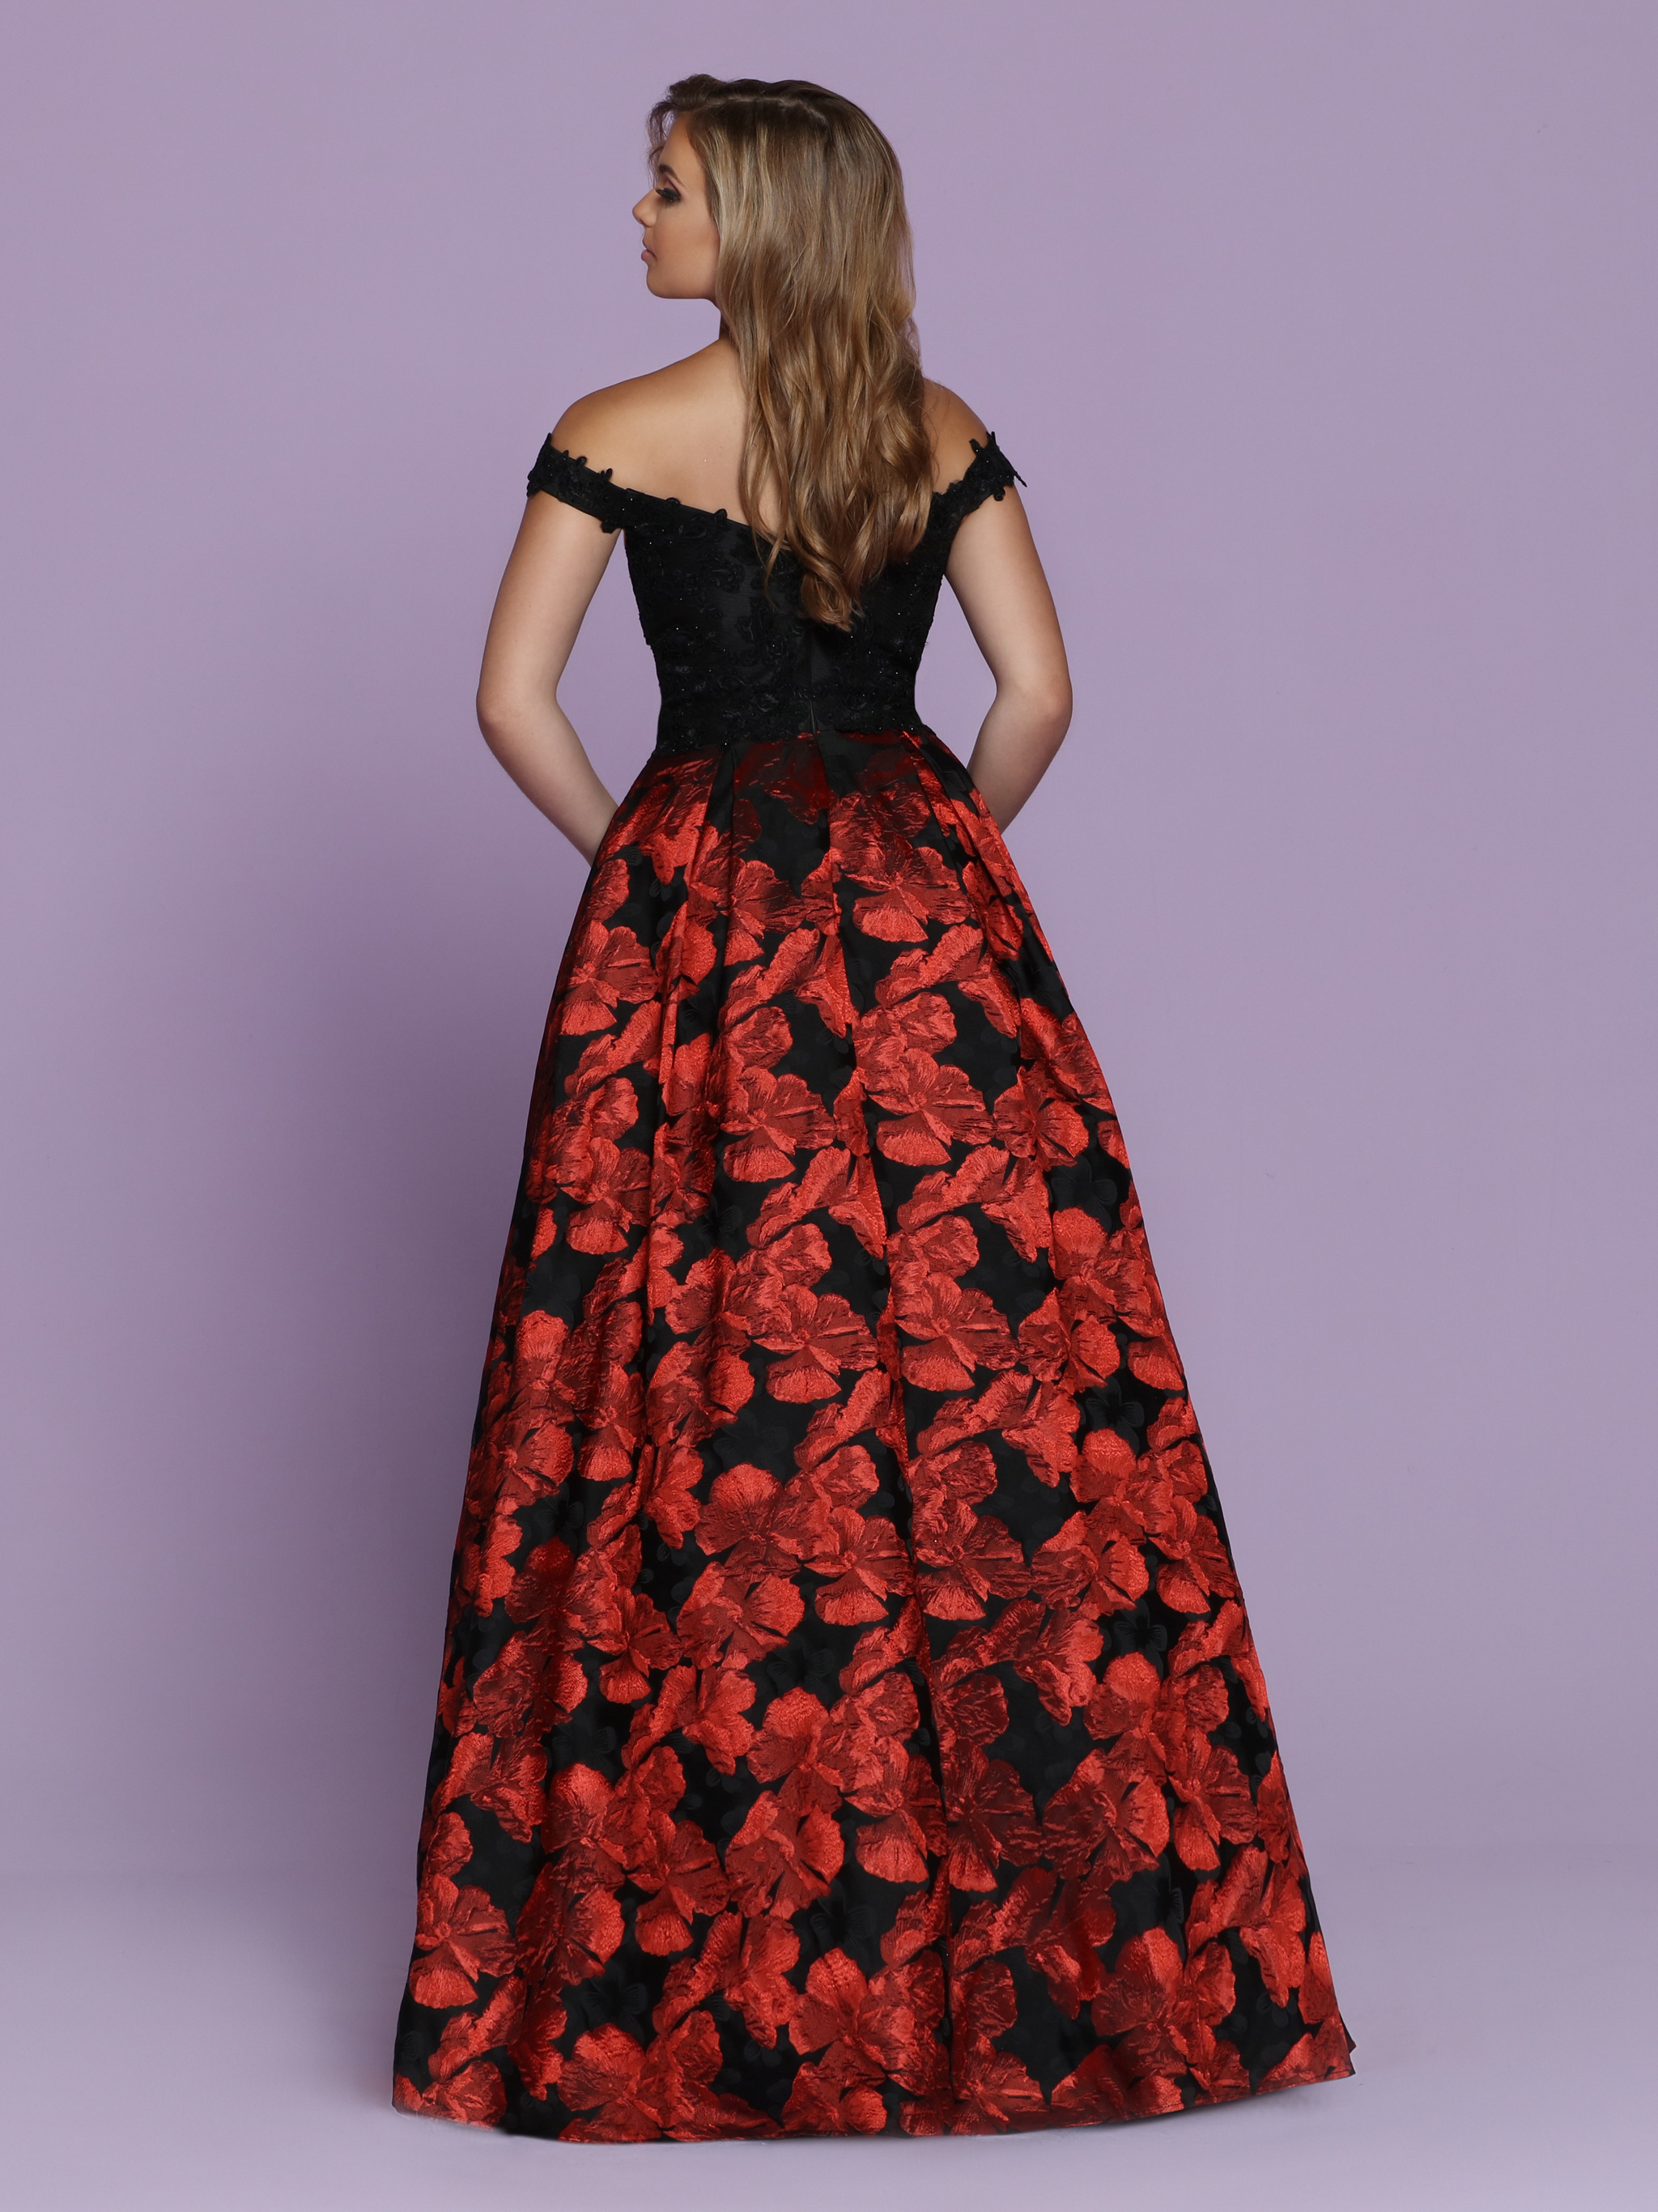 Image showing back view of style #72041